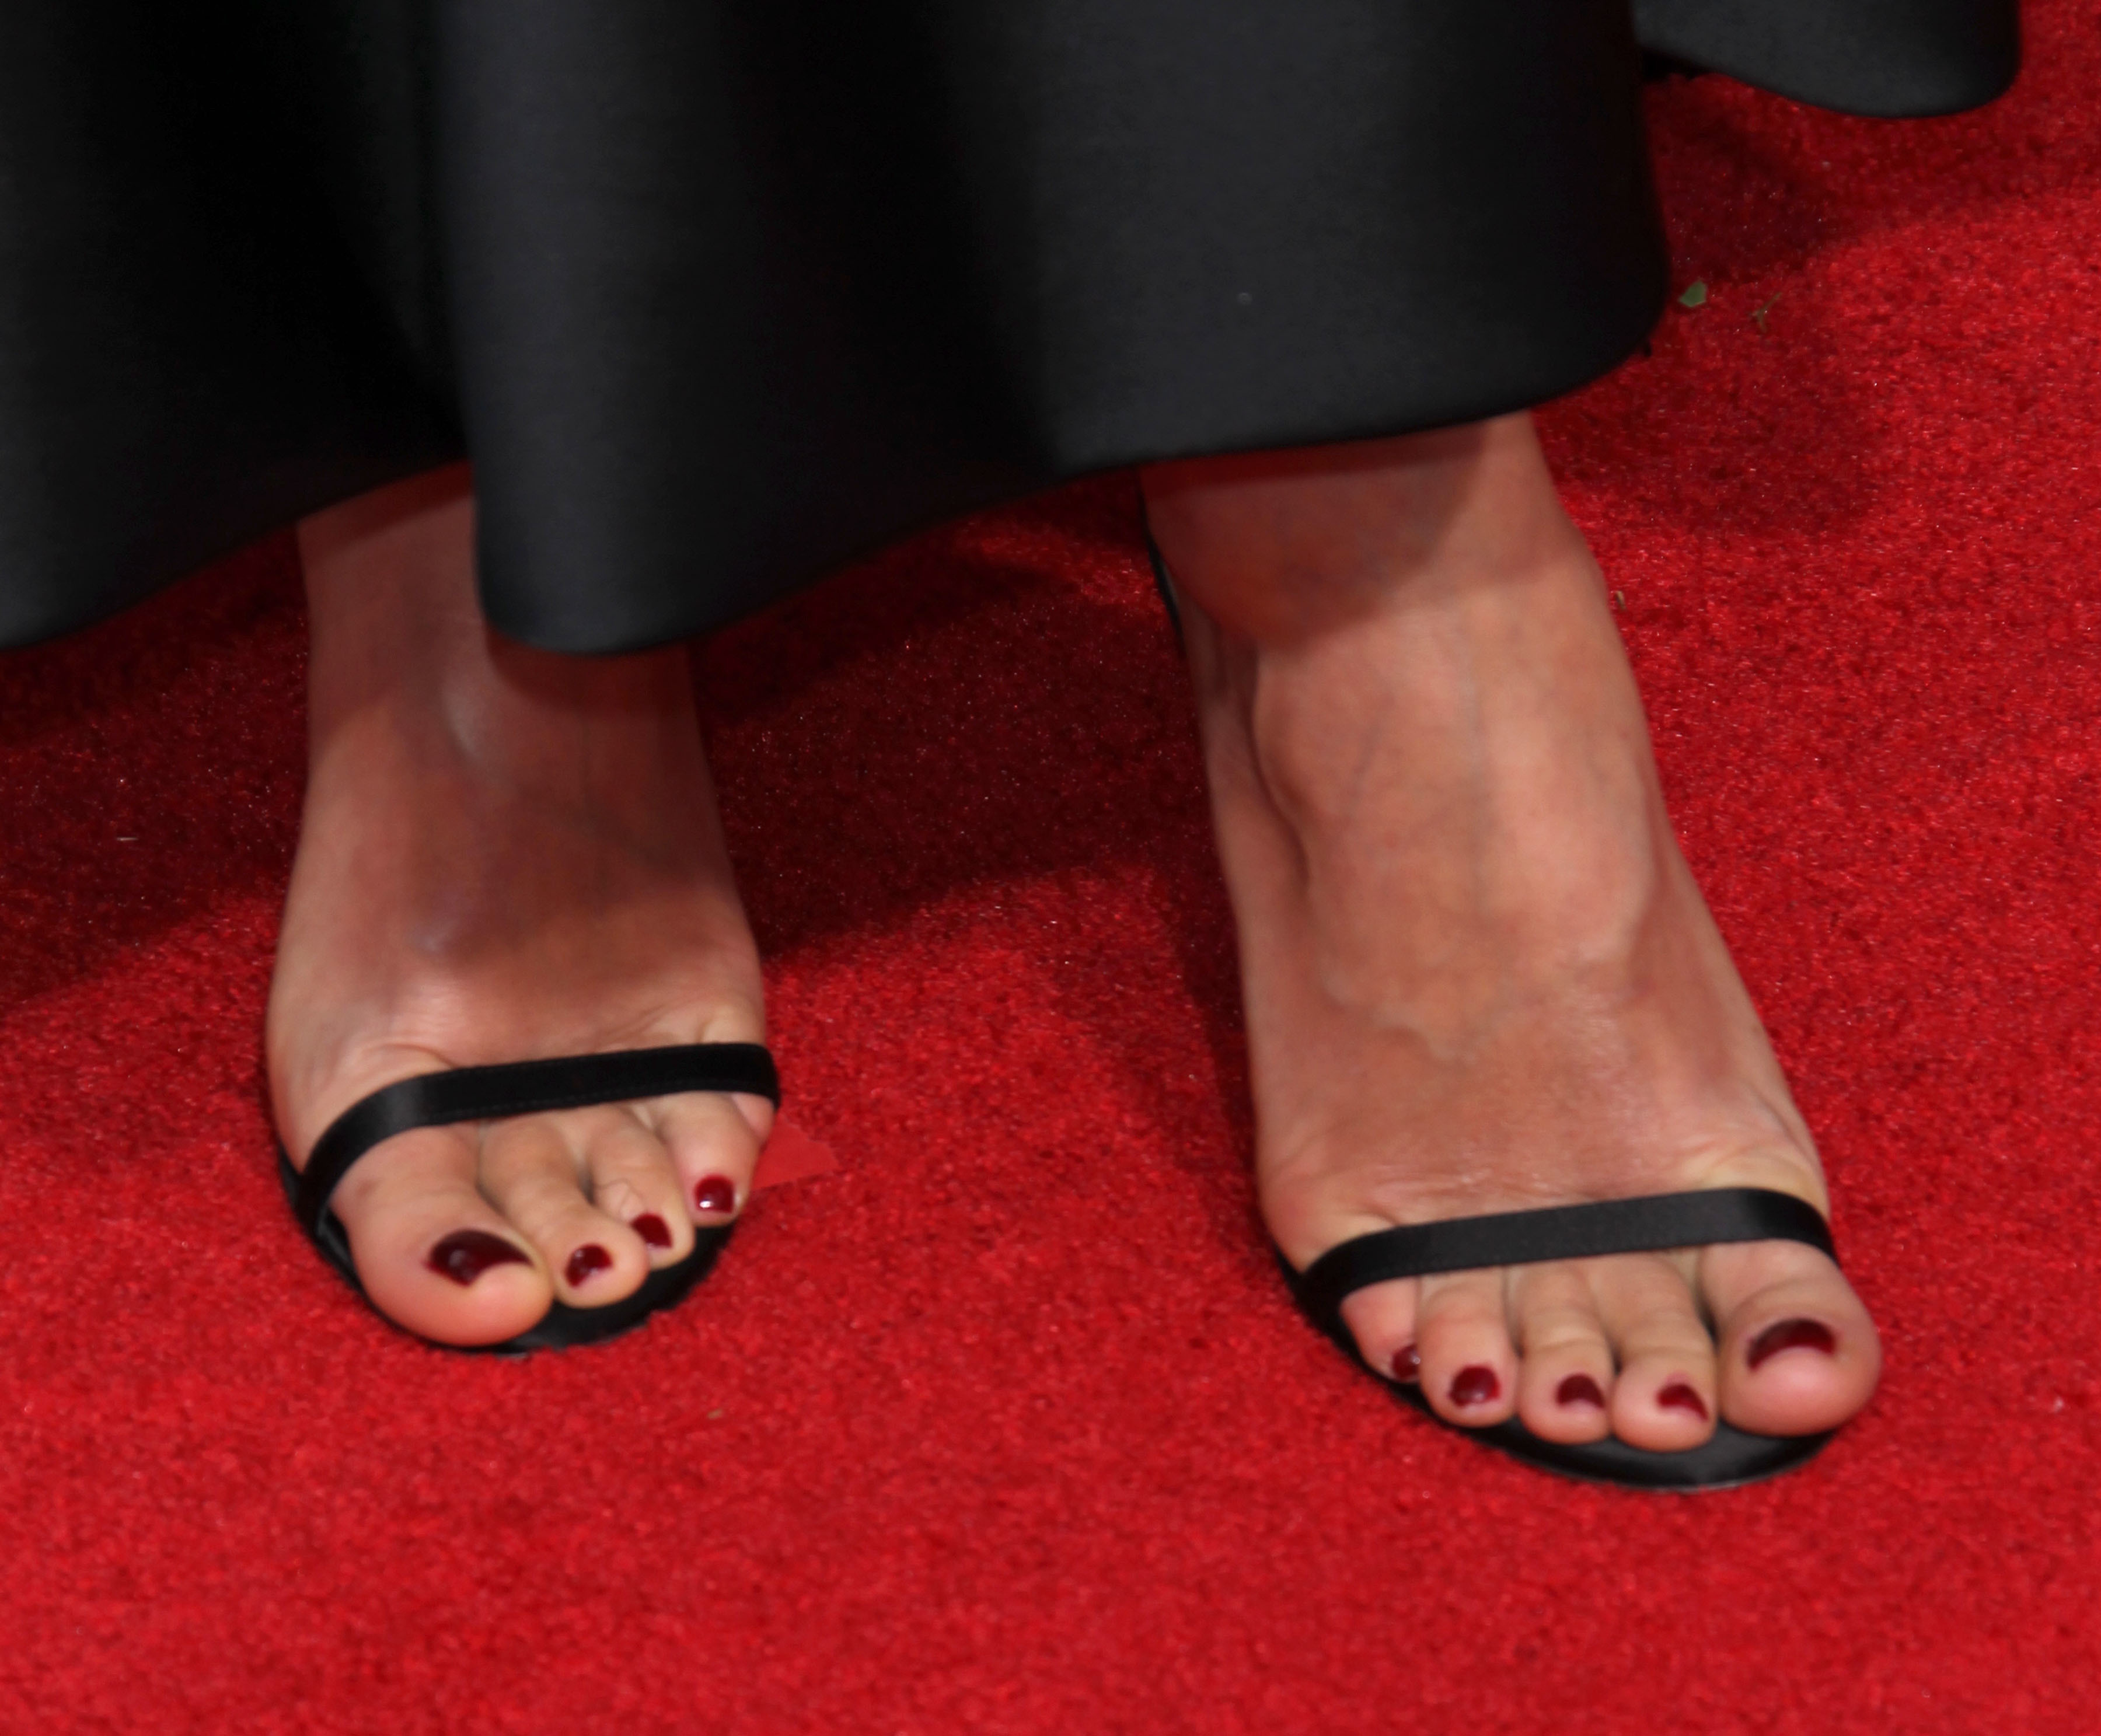 Feet Caitriona Balfe nudes (21 images), Tits